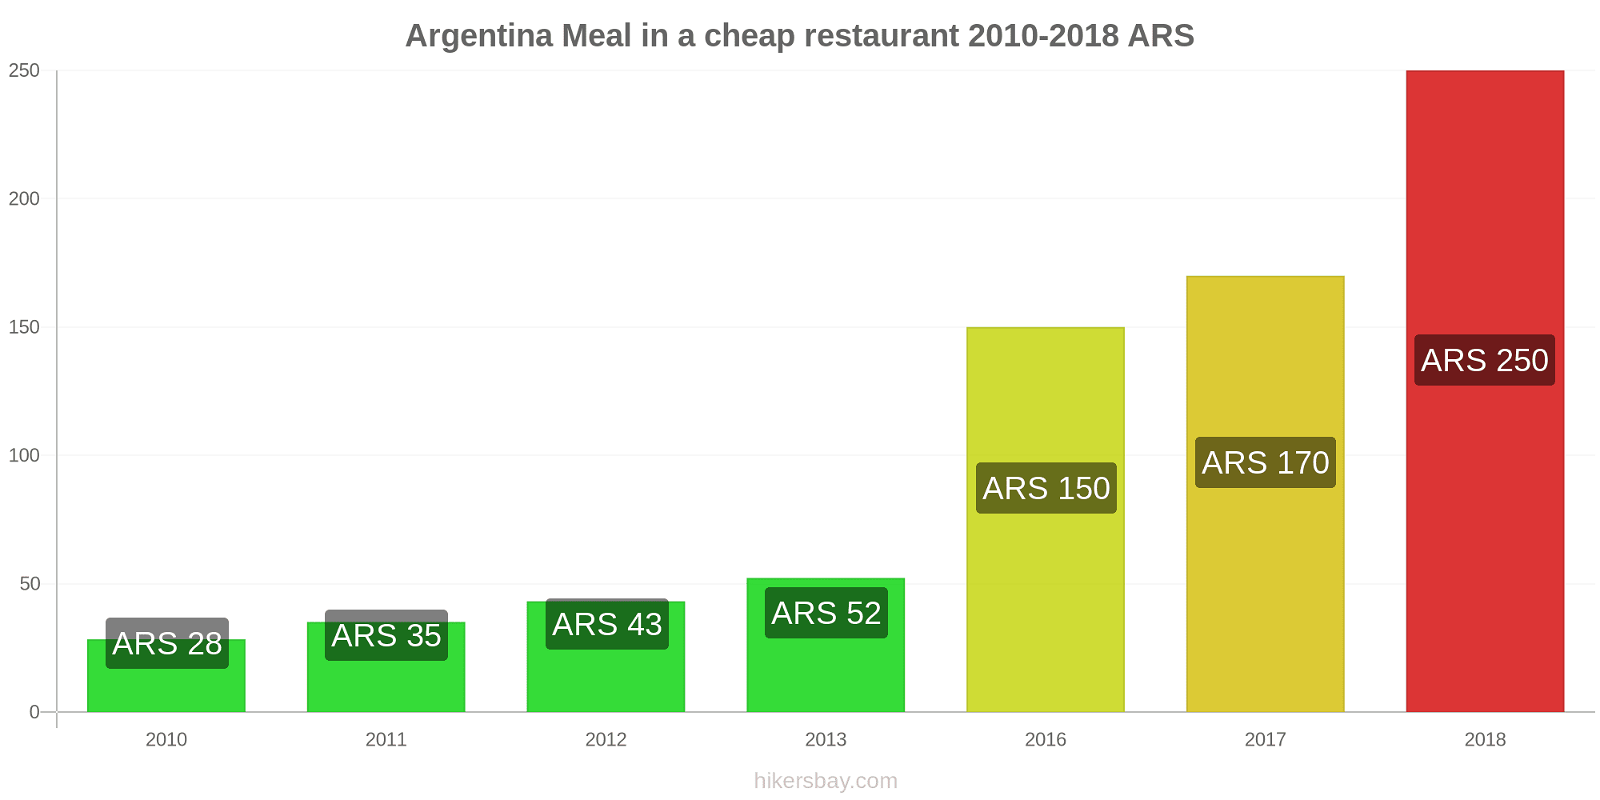 Argentina price changes Meal in a cheap restaurant hikersbay.com